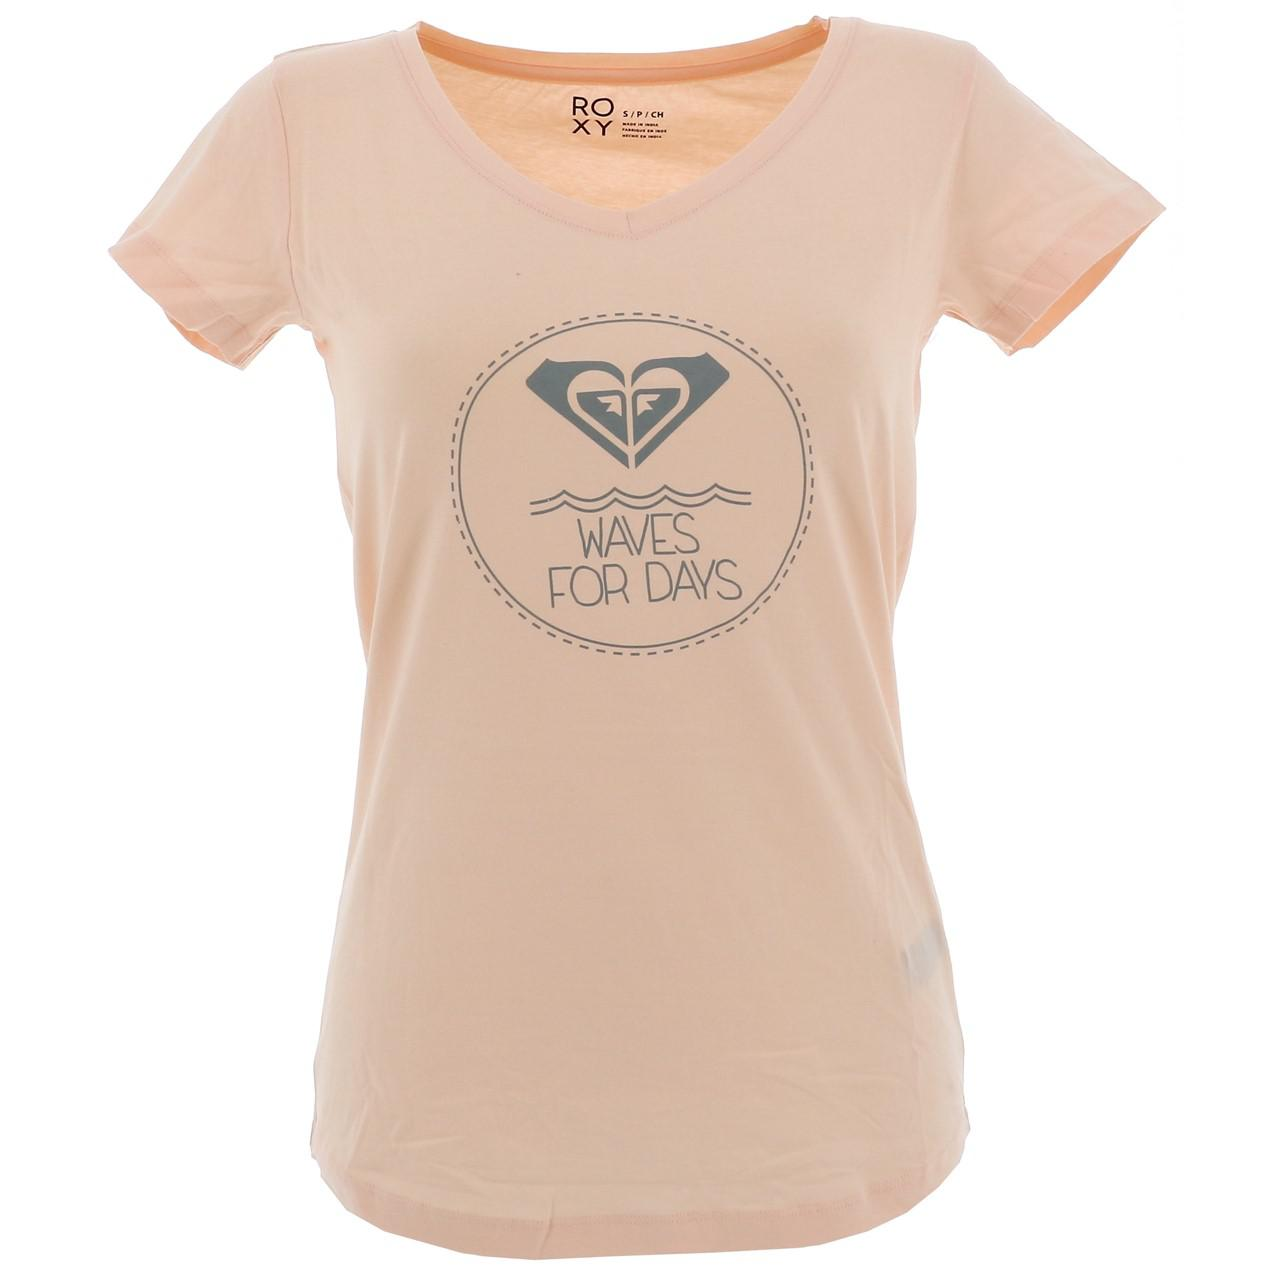 Tee-shirt-manches-courtes-Roxy-Miri-waves-days-rse-sp2-Rose-17523-Neuf